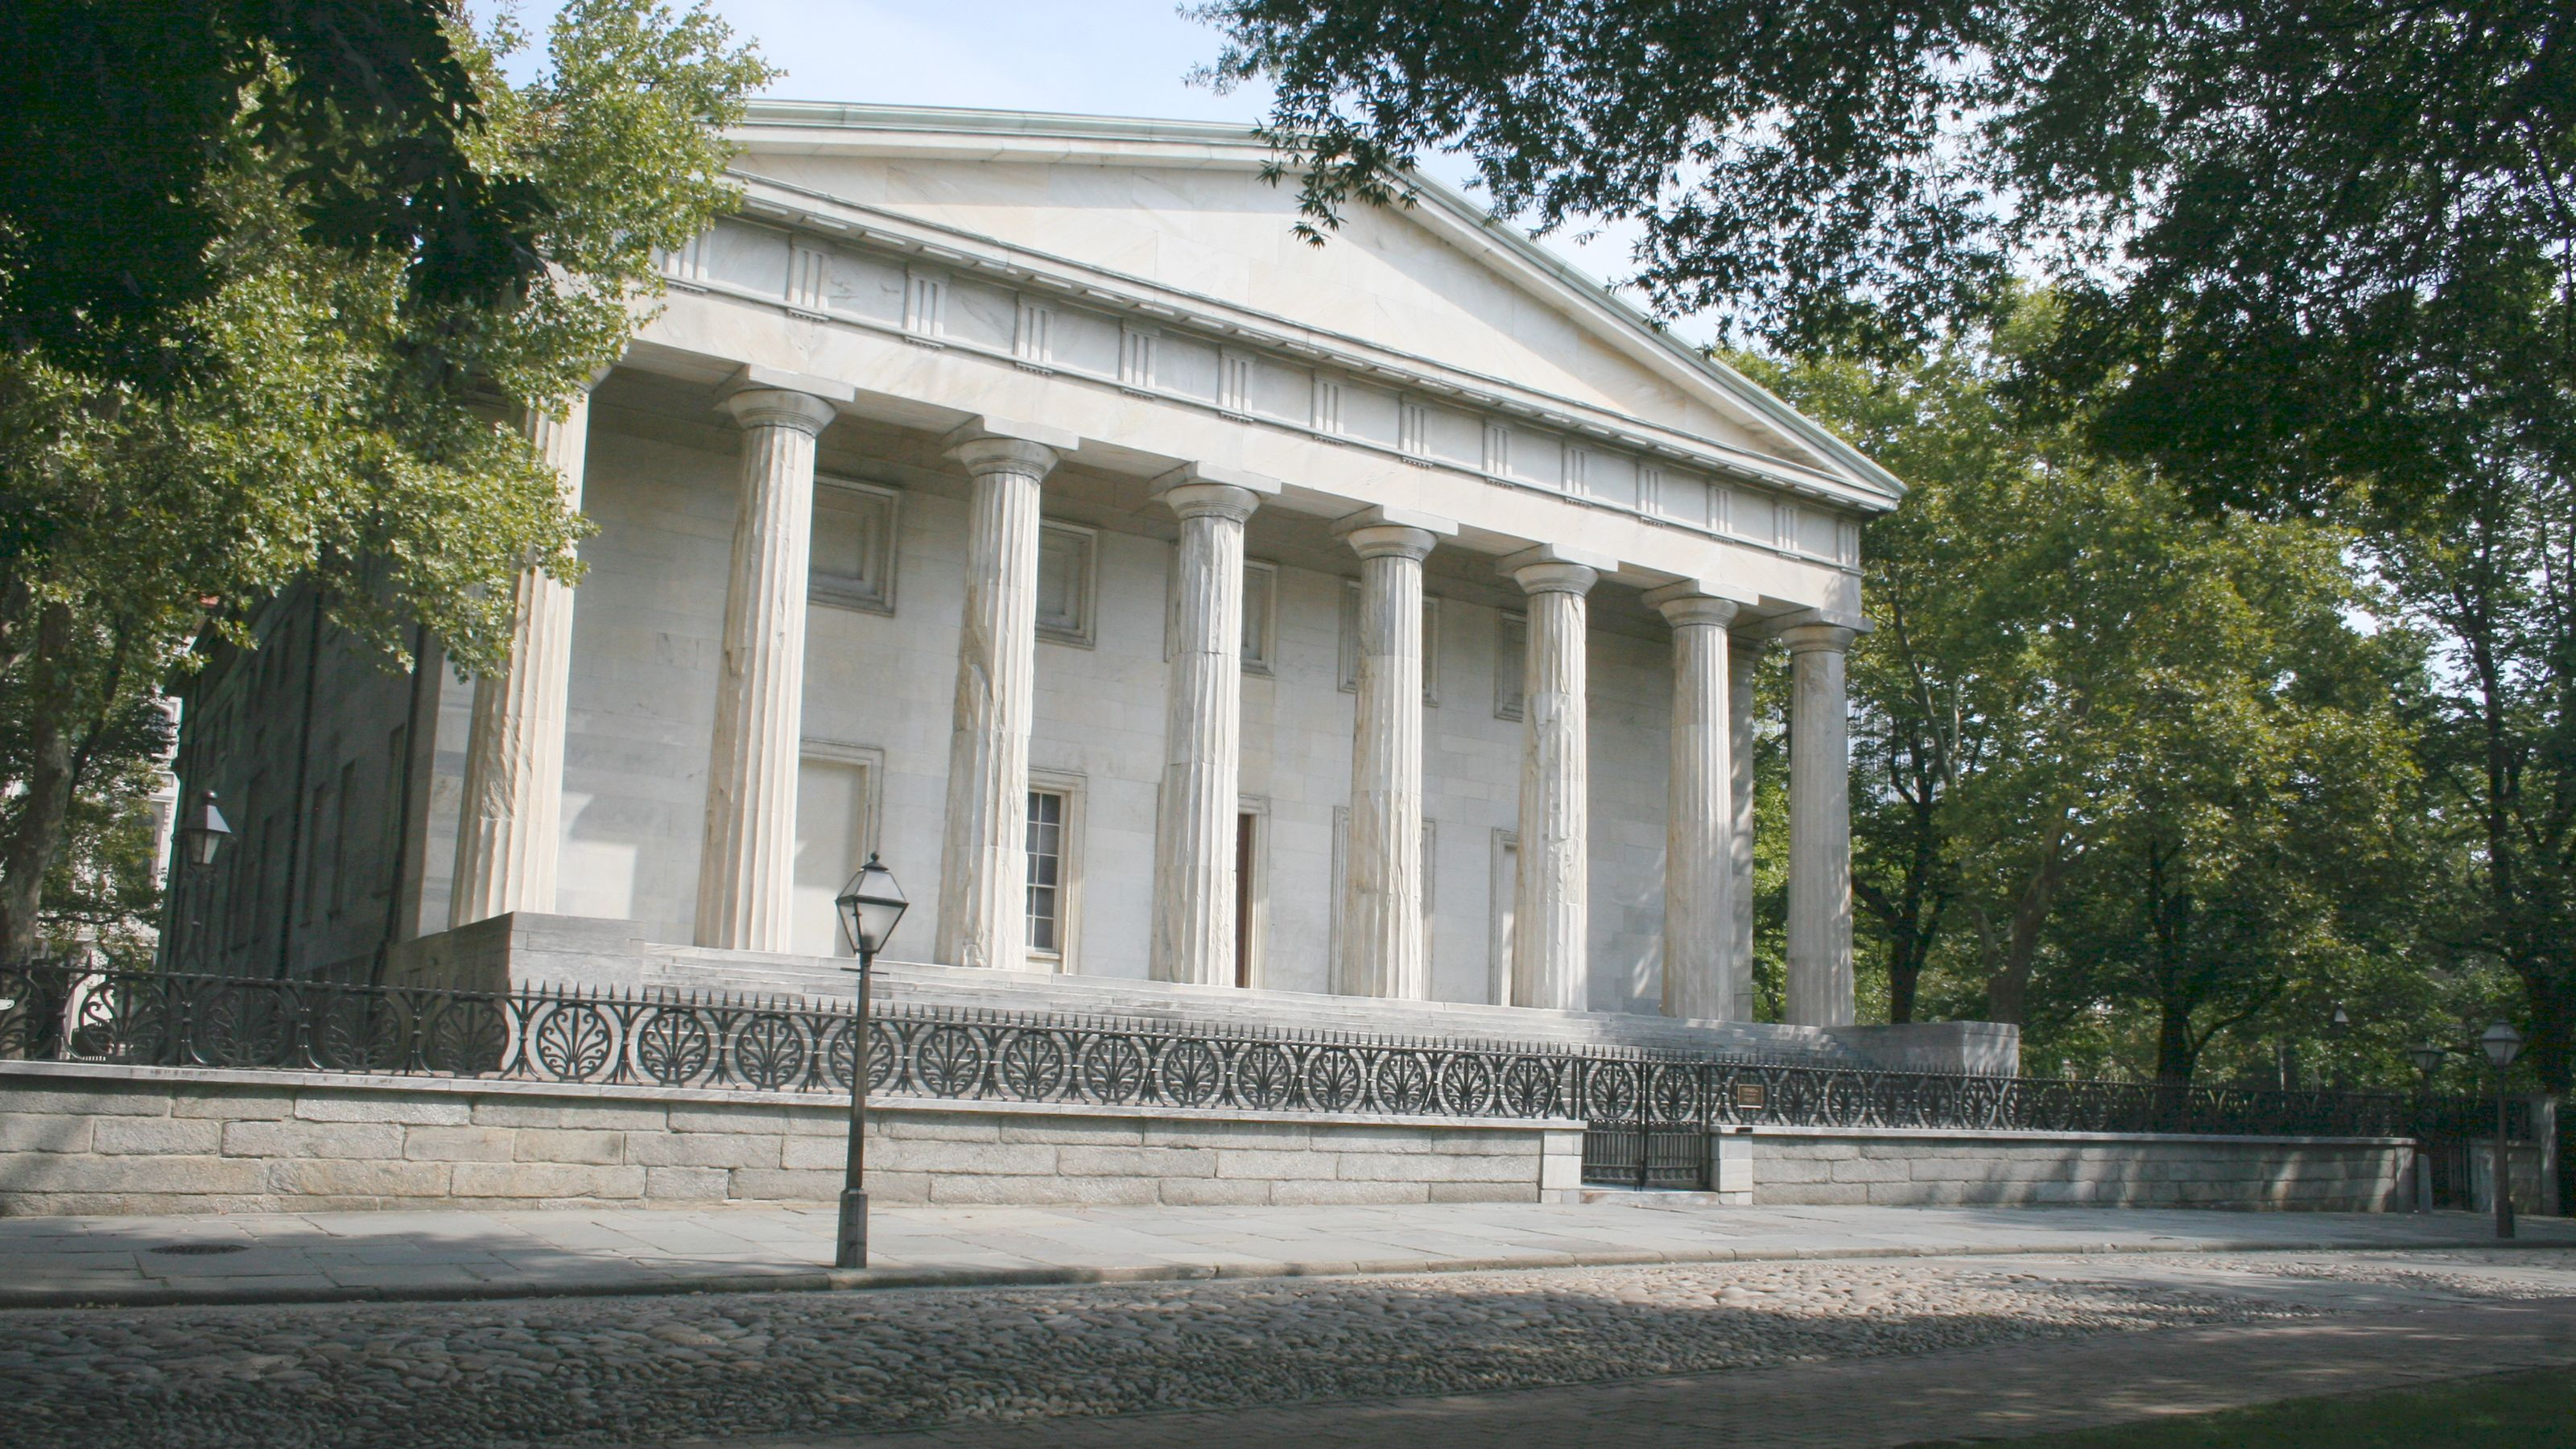 Historical white columned Second Bank of the United States in Philadelphia